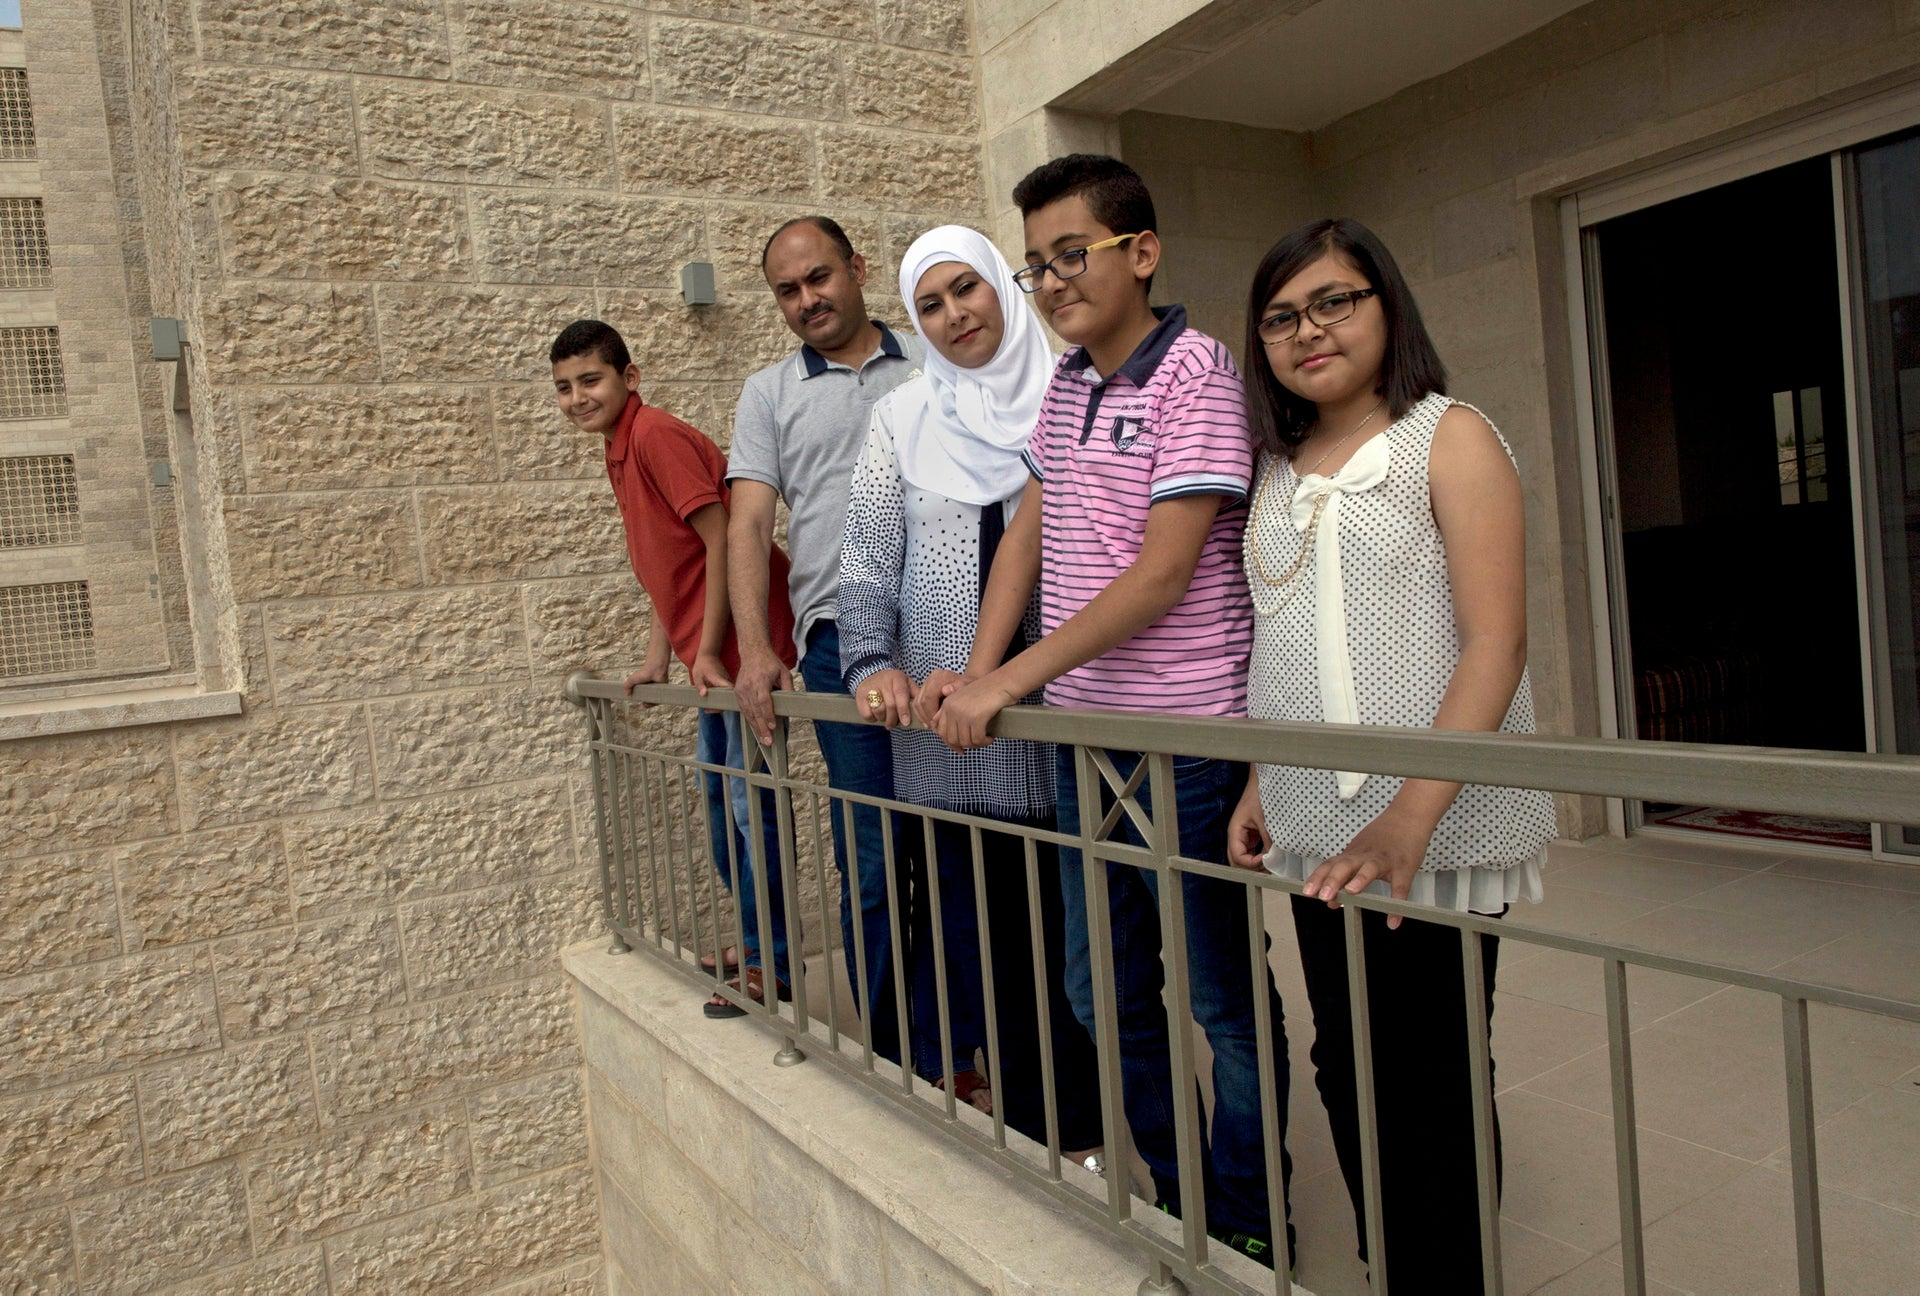 The al Khateeb family pose for a photo on the terrace of their newly delivered apartment in West Bank city of Rawabi, north of Ramallah, June 4, 2016.